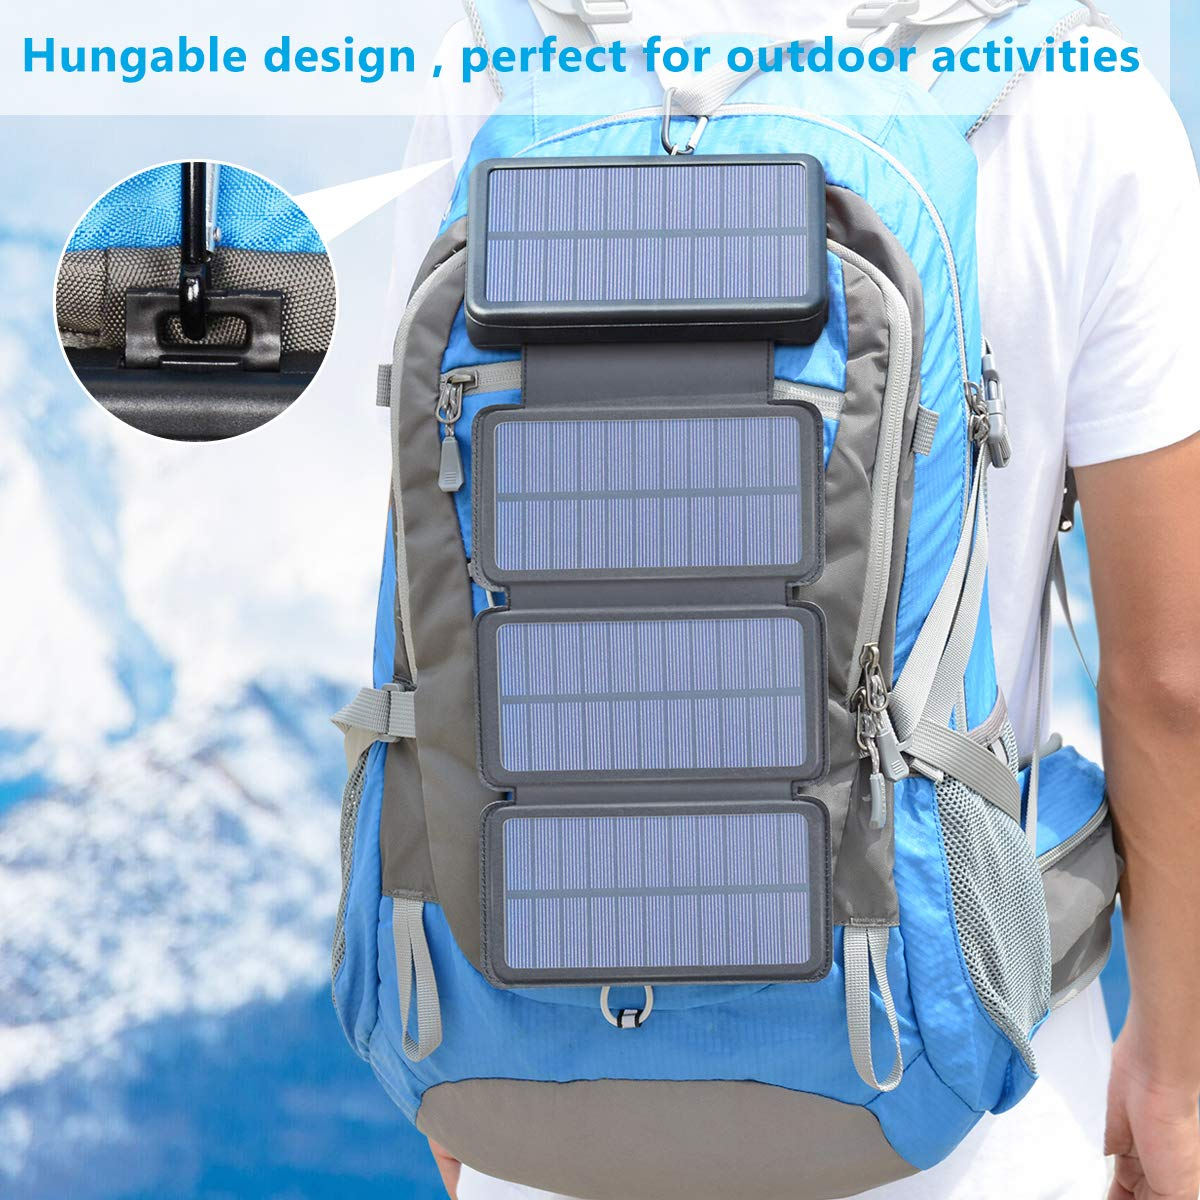 Solar Charger 25000mAh, Riapow Waterproof Power Bank with 4 Solar Panels, Dual USB & Type-C Input for Smart Phones, ipad and Laptop, Outdoor Camping